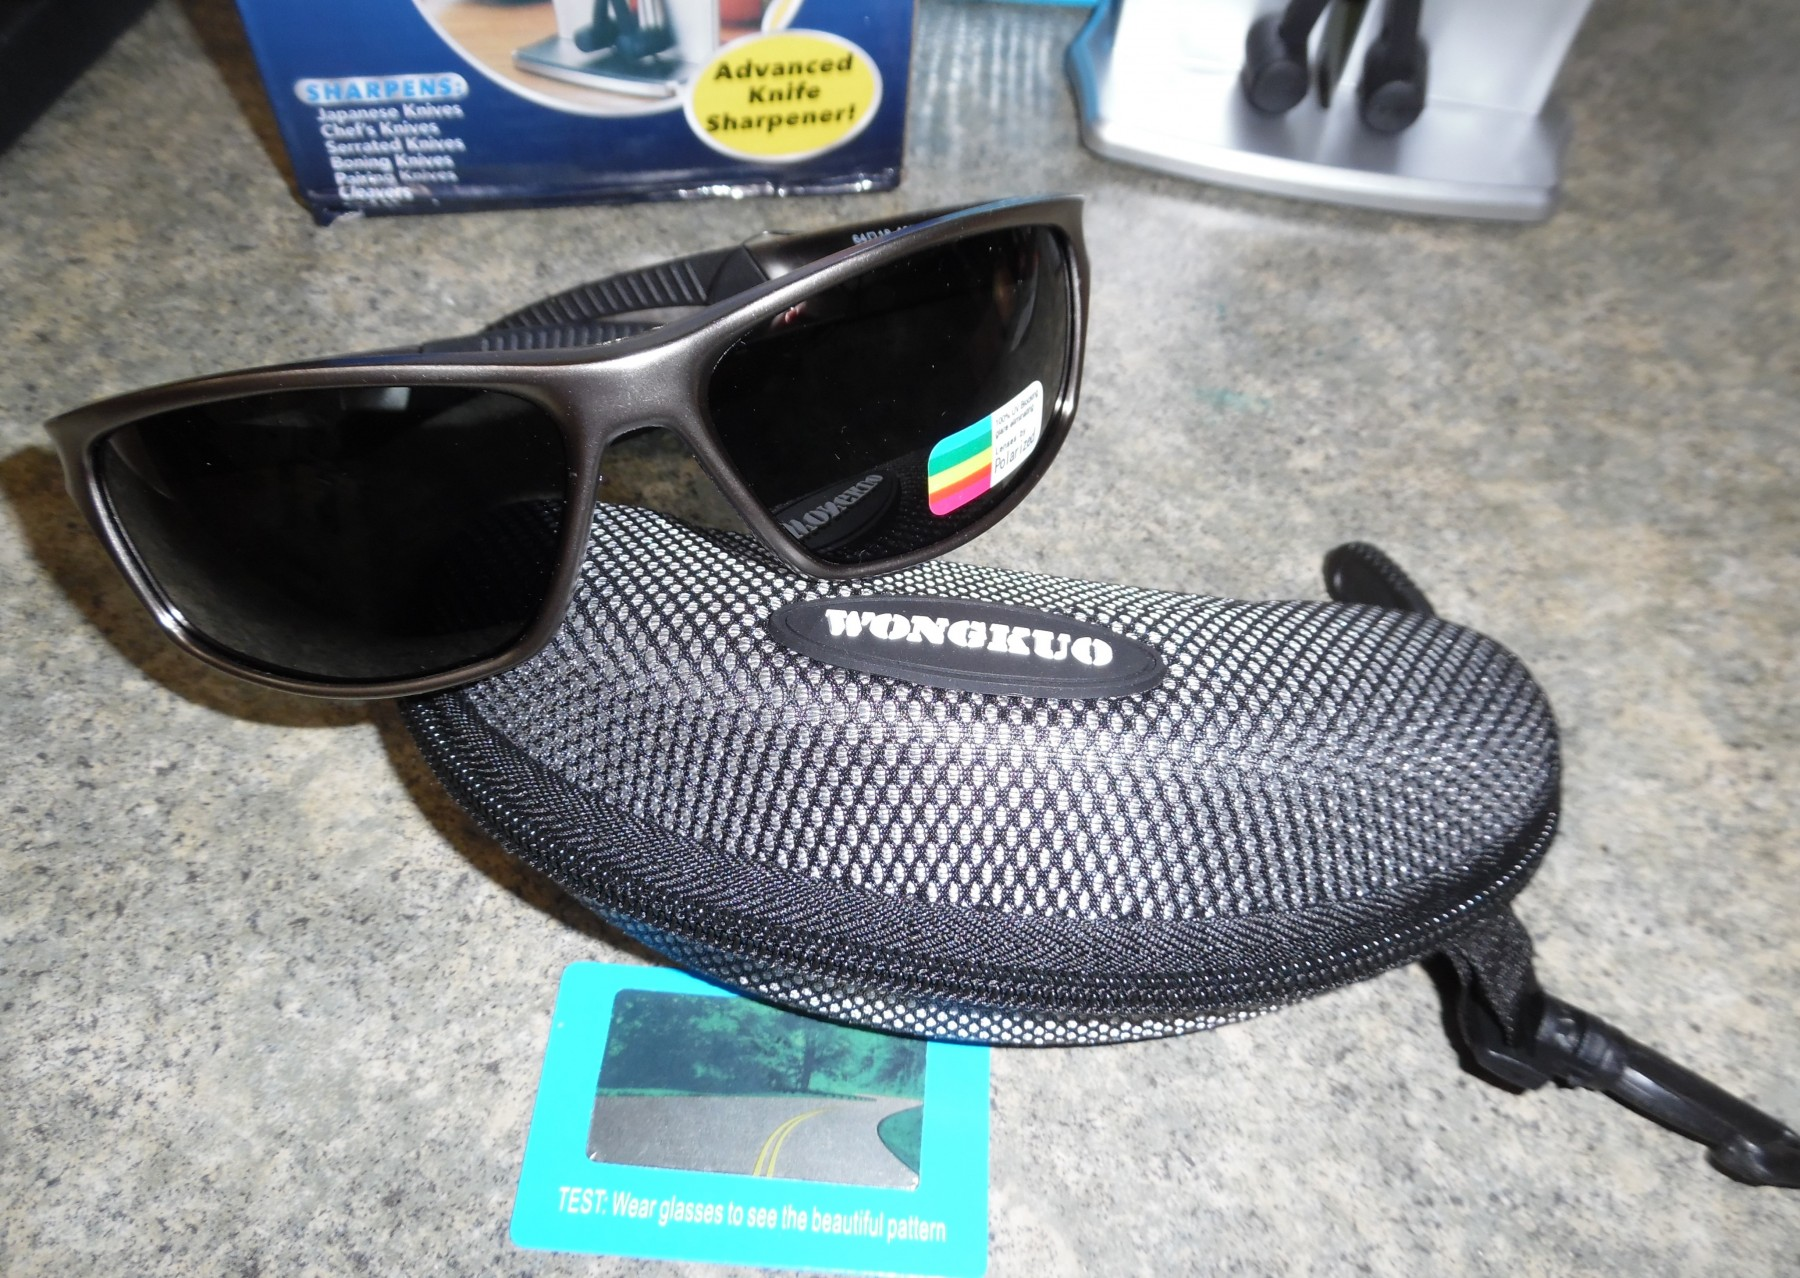 Nice Sunglasses for the Price